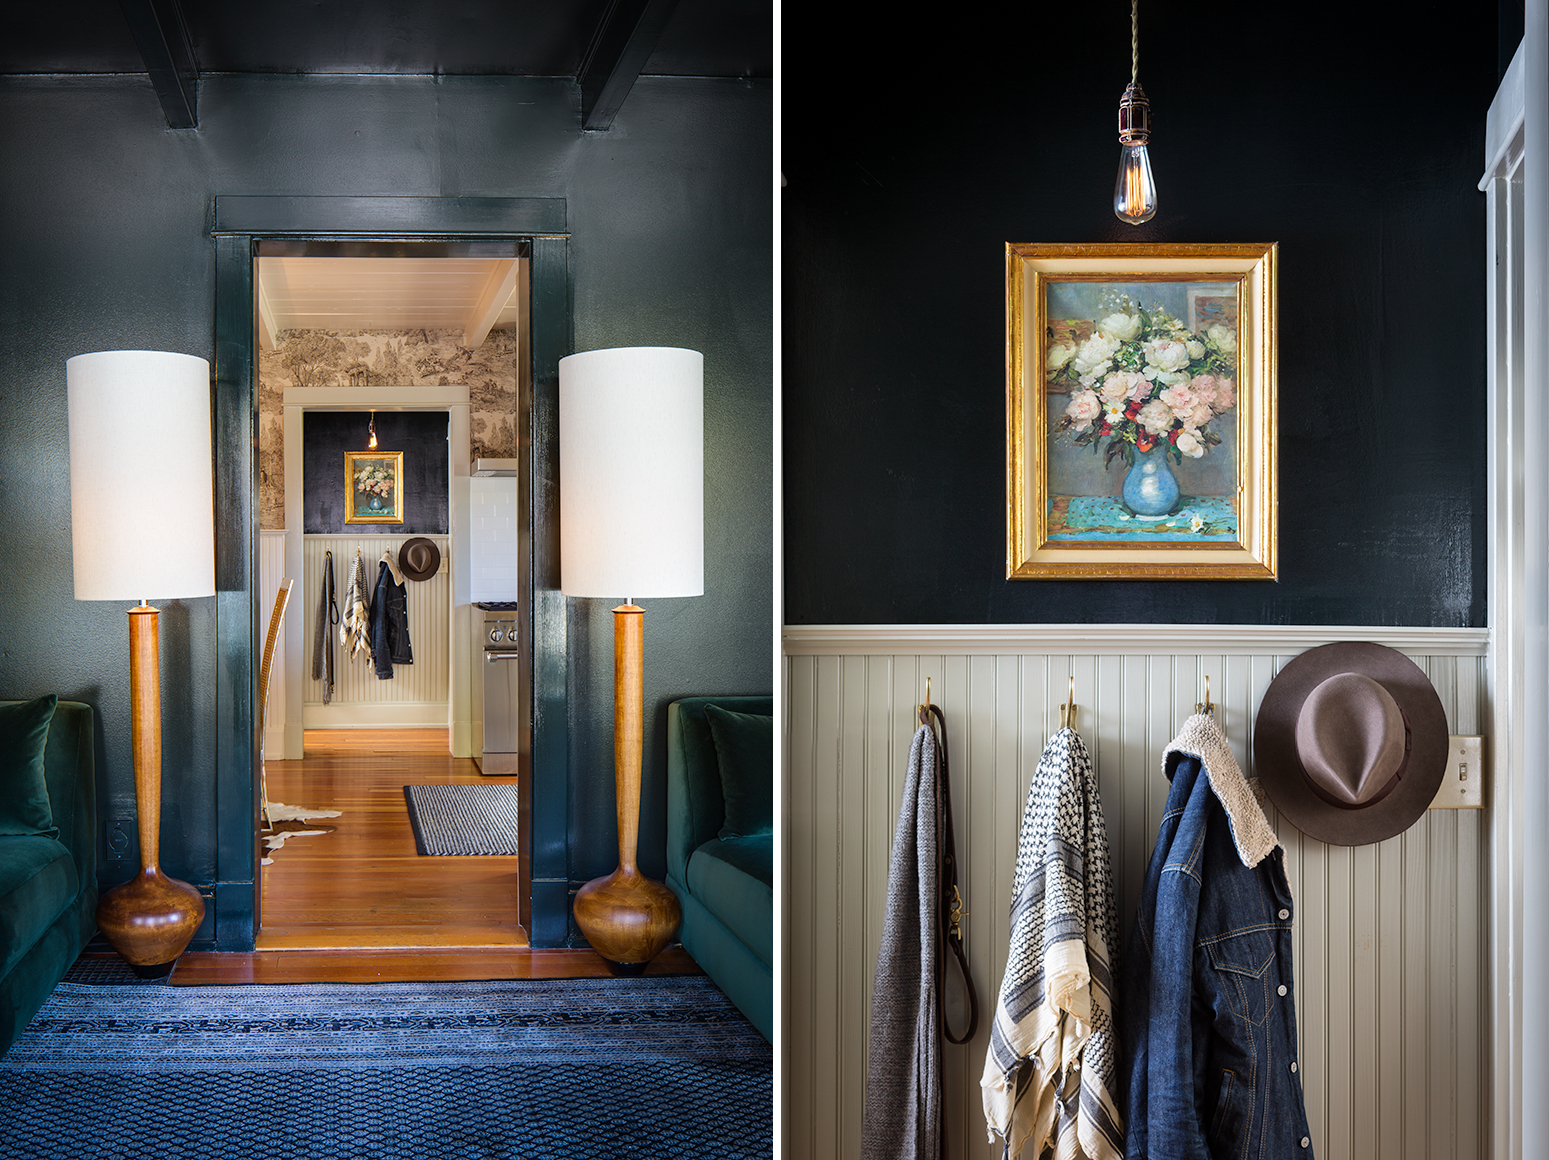 Interior views of a cottage in Park City UT, with wood floors, green walls, retro lighting and bead board panneling.Restored Miners Shack, Park City, UT. for Park City Magazine